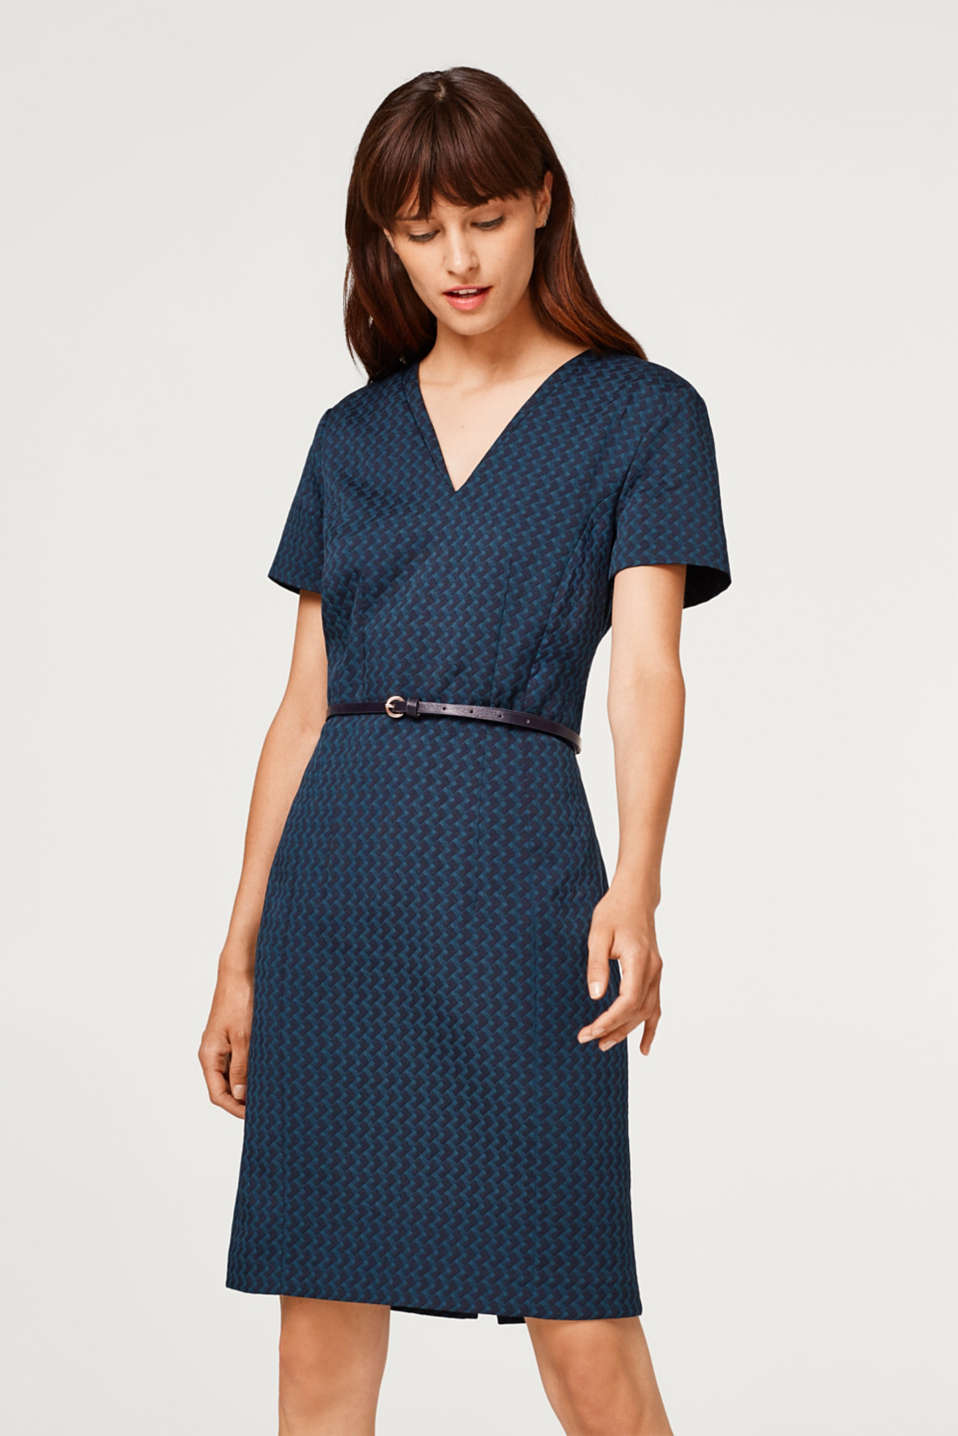 Esprit - Sheath dress with a jacquard pattern and stretch